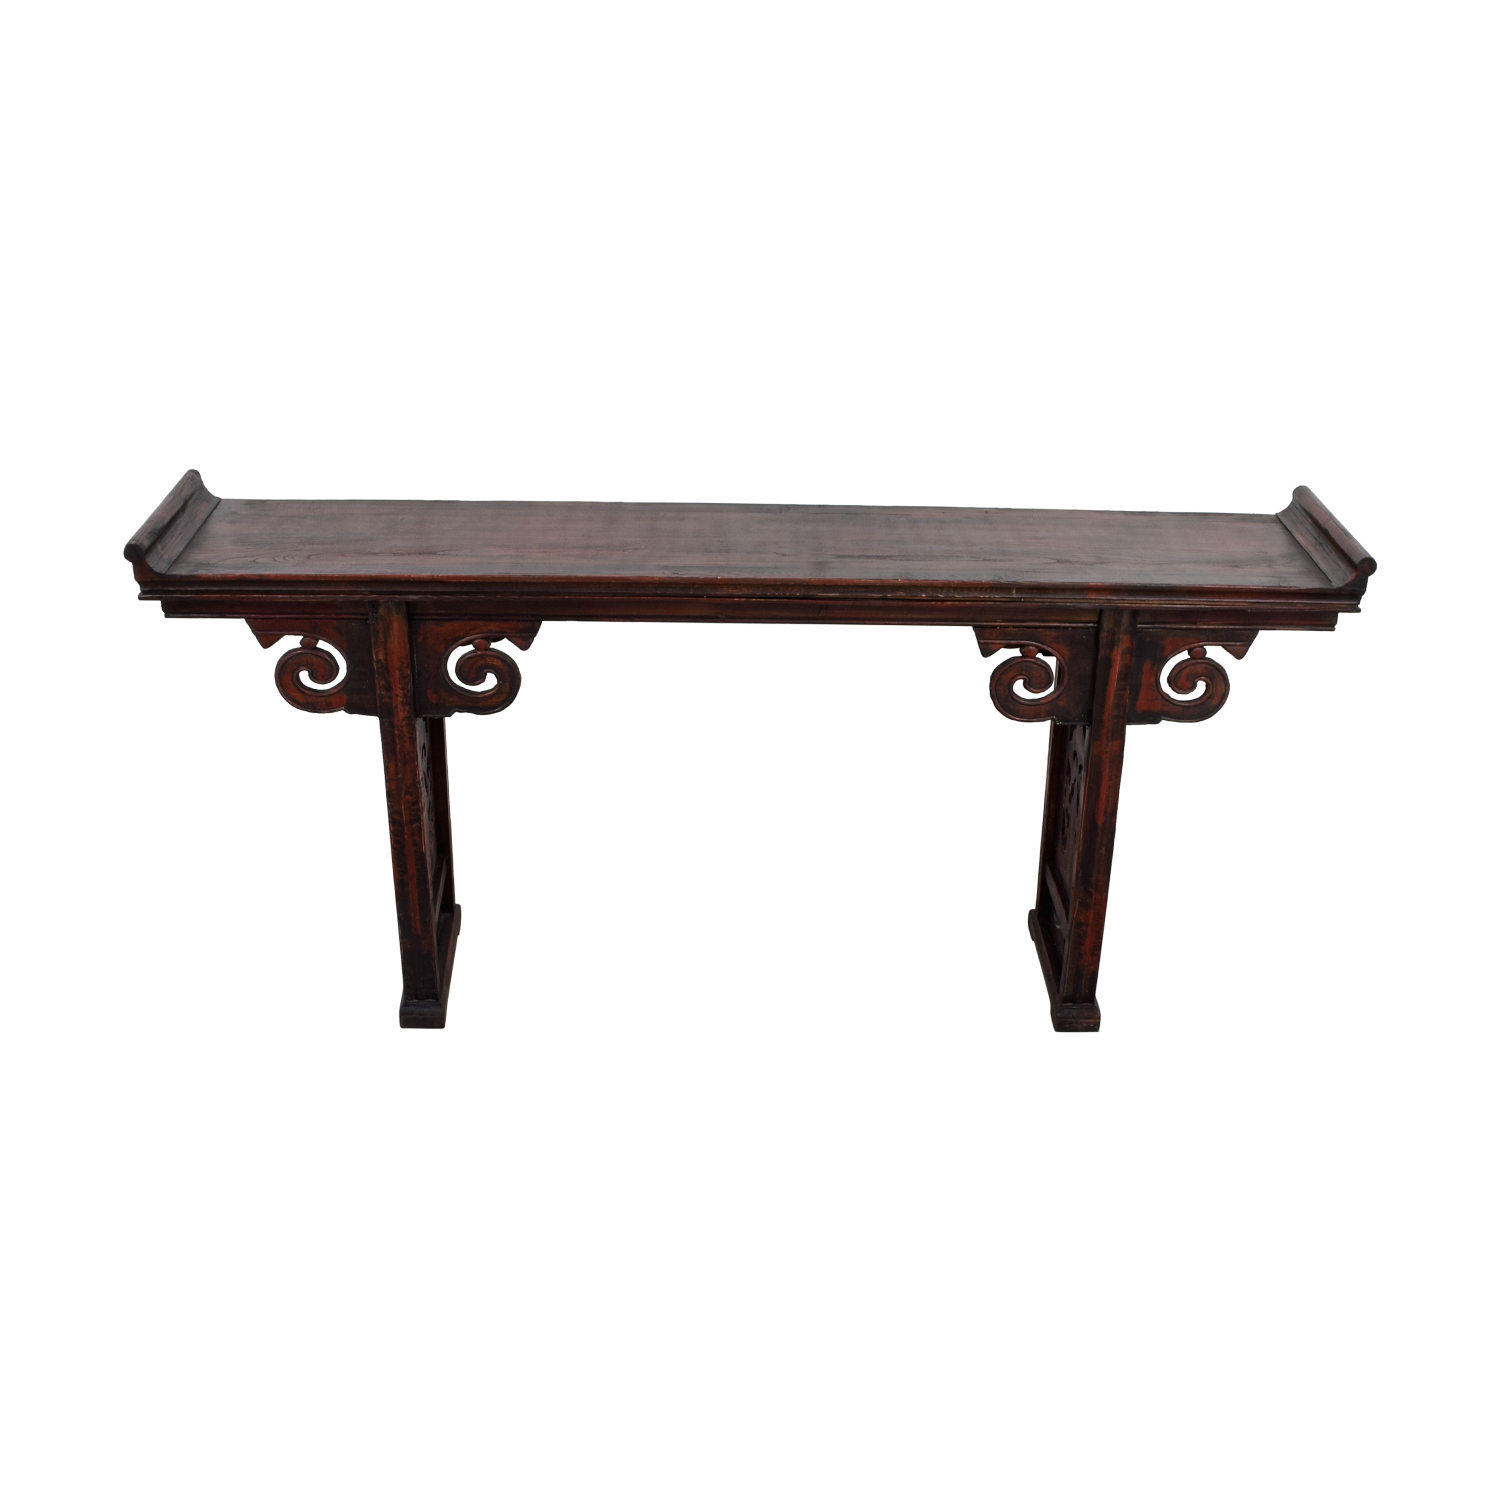 Arhaus Arhaus Carved Wood Altar Table dimensions